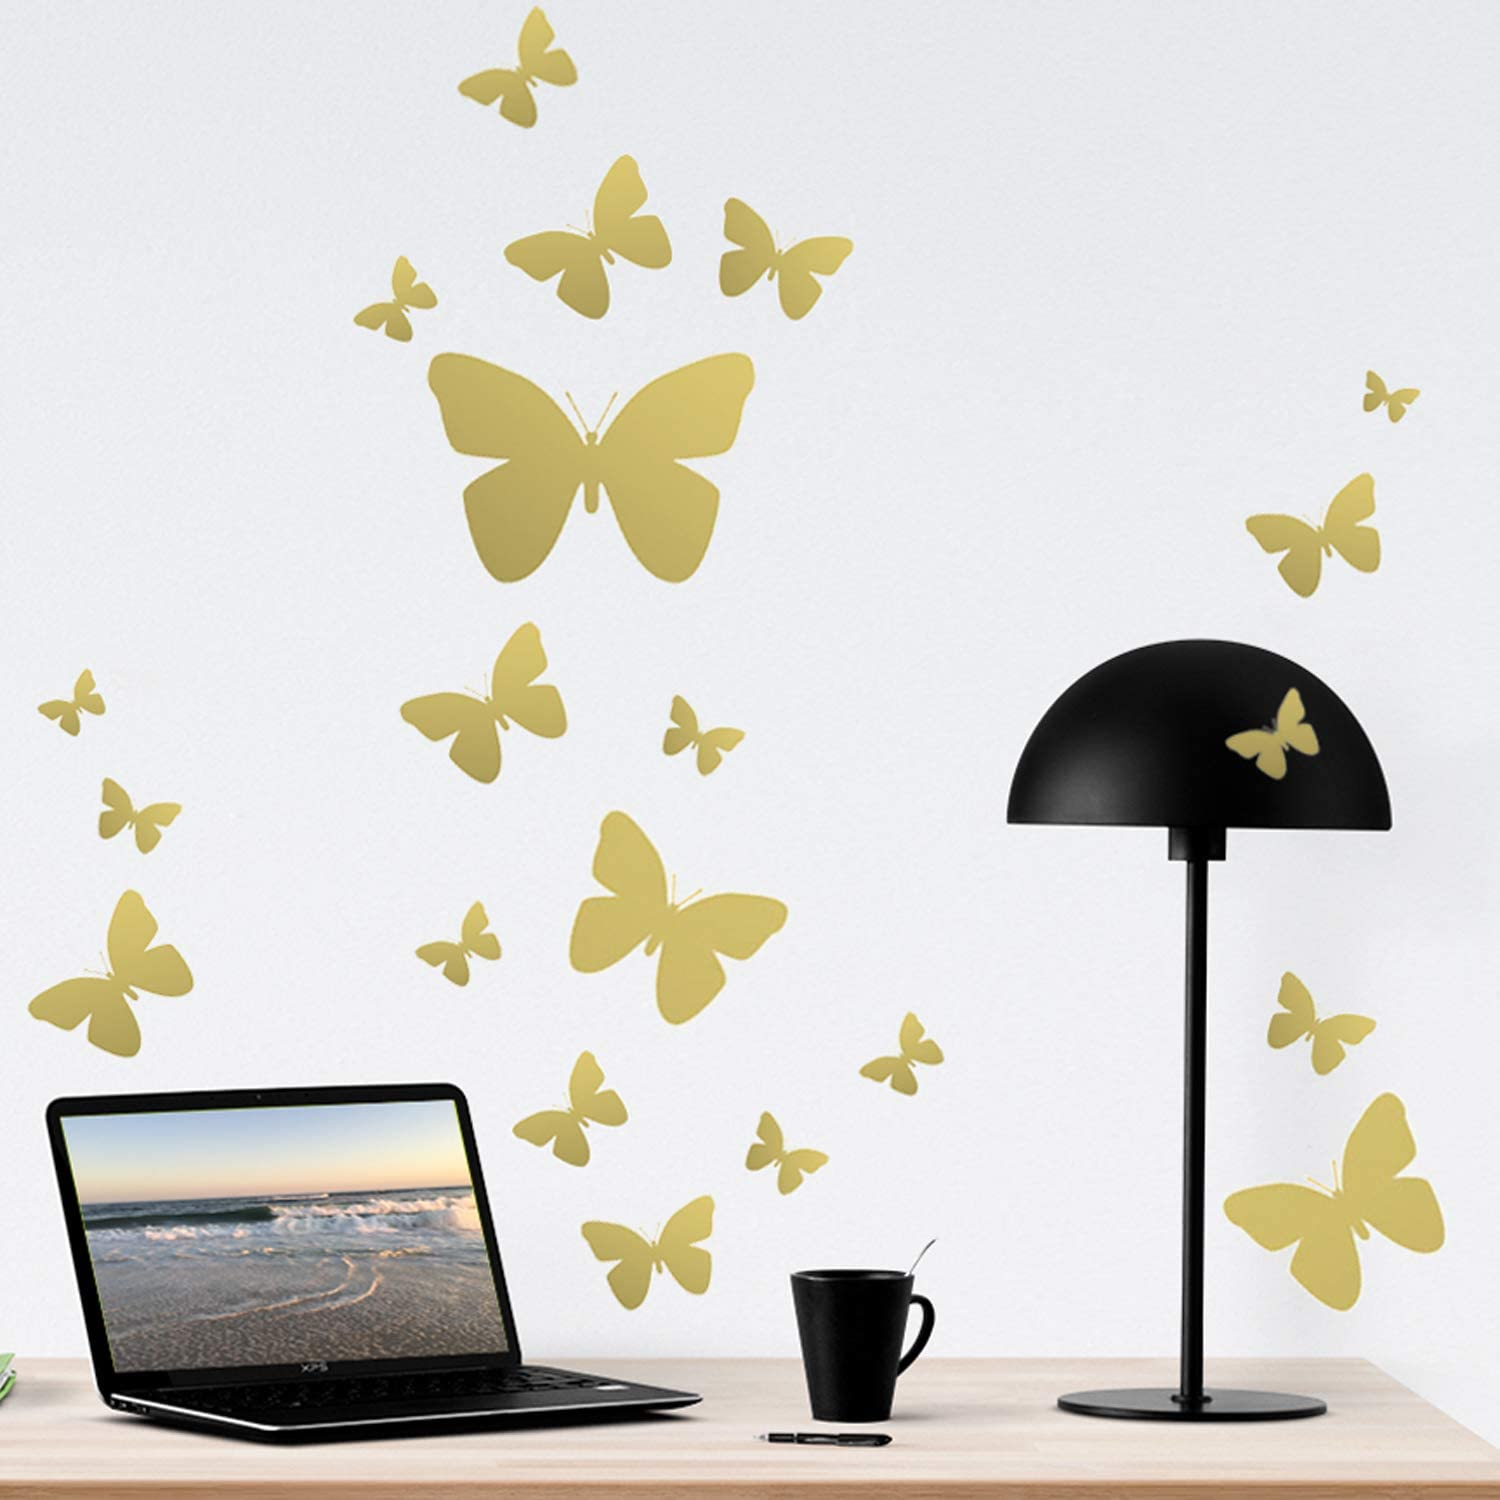 Amazon Com Butterfly Wall Decals Beautiful Girls Wall Stickers Wall Art Vinyl Stickers For Bedroom Peel And Stick Kids Room Decor Nursery Toddler Teen Decorations Playroom Birthday Gift 2 Gold Arts Crafts